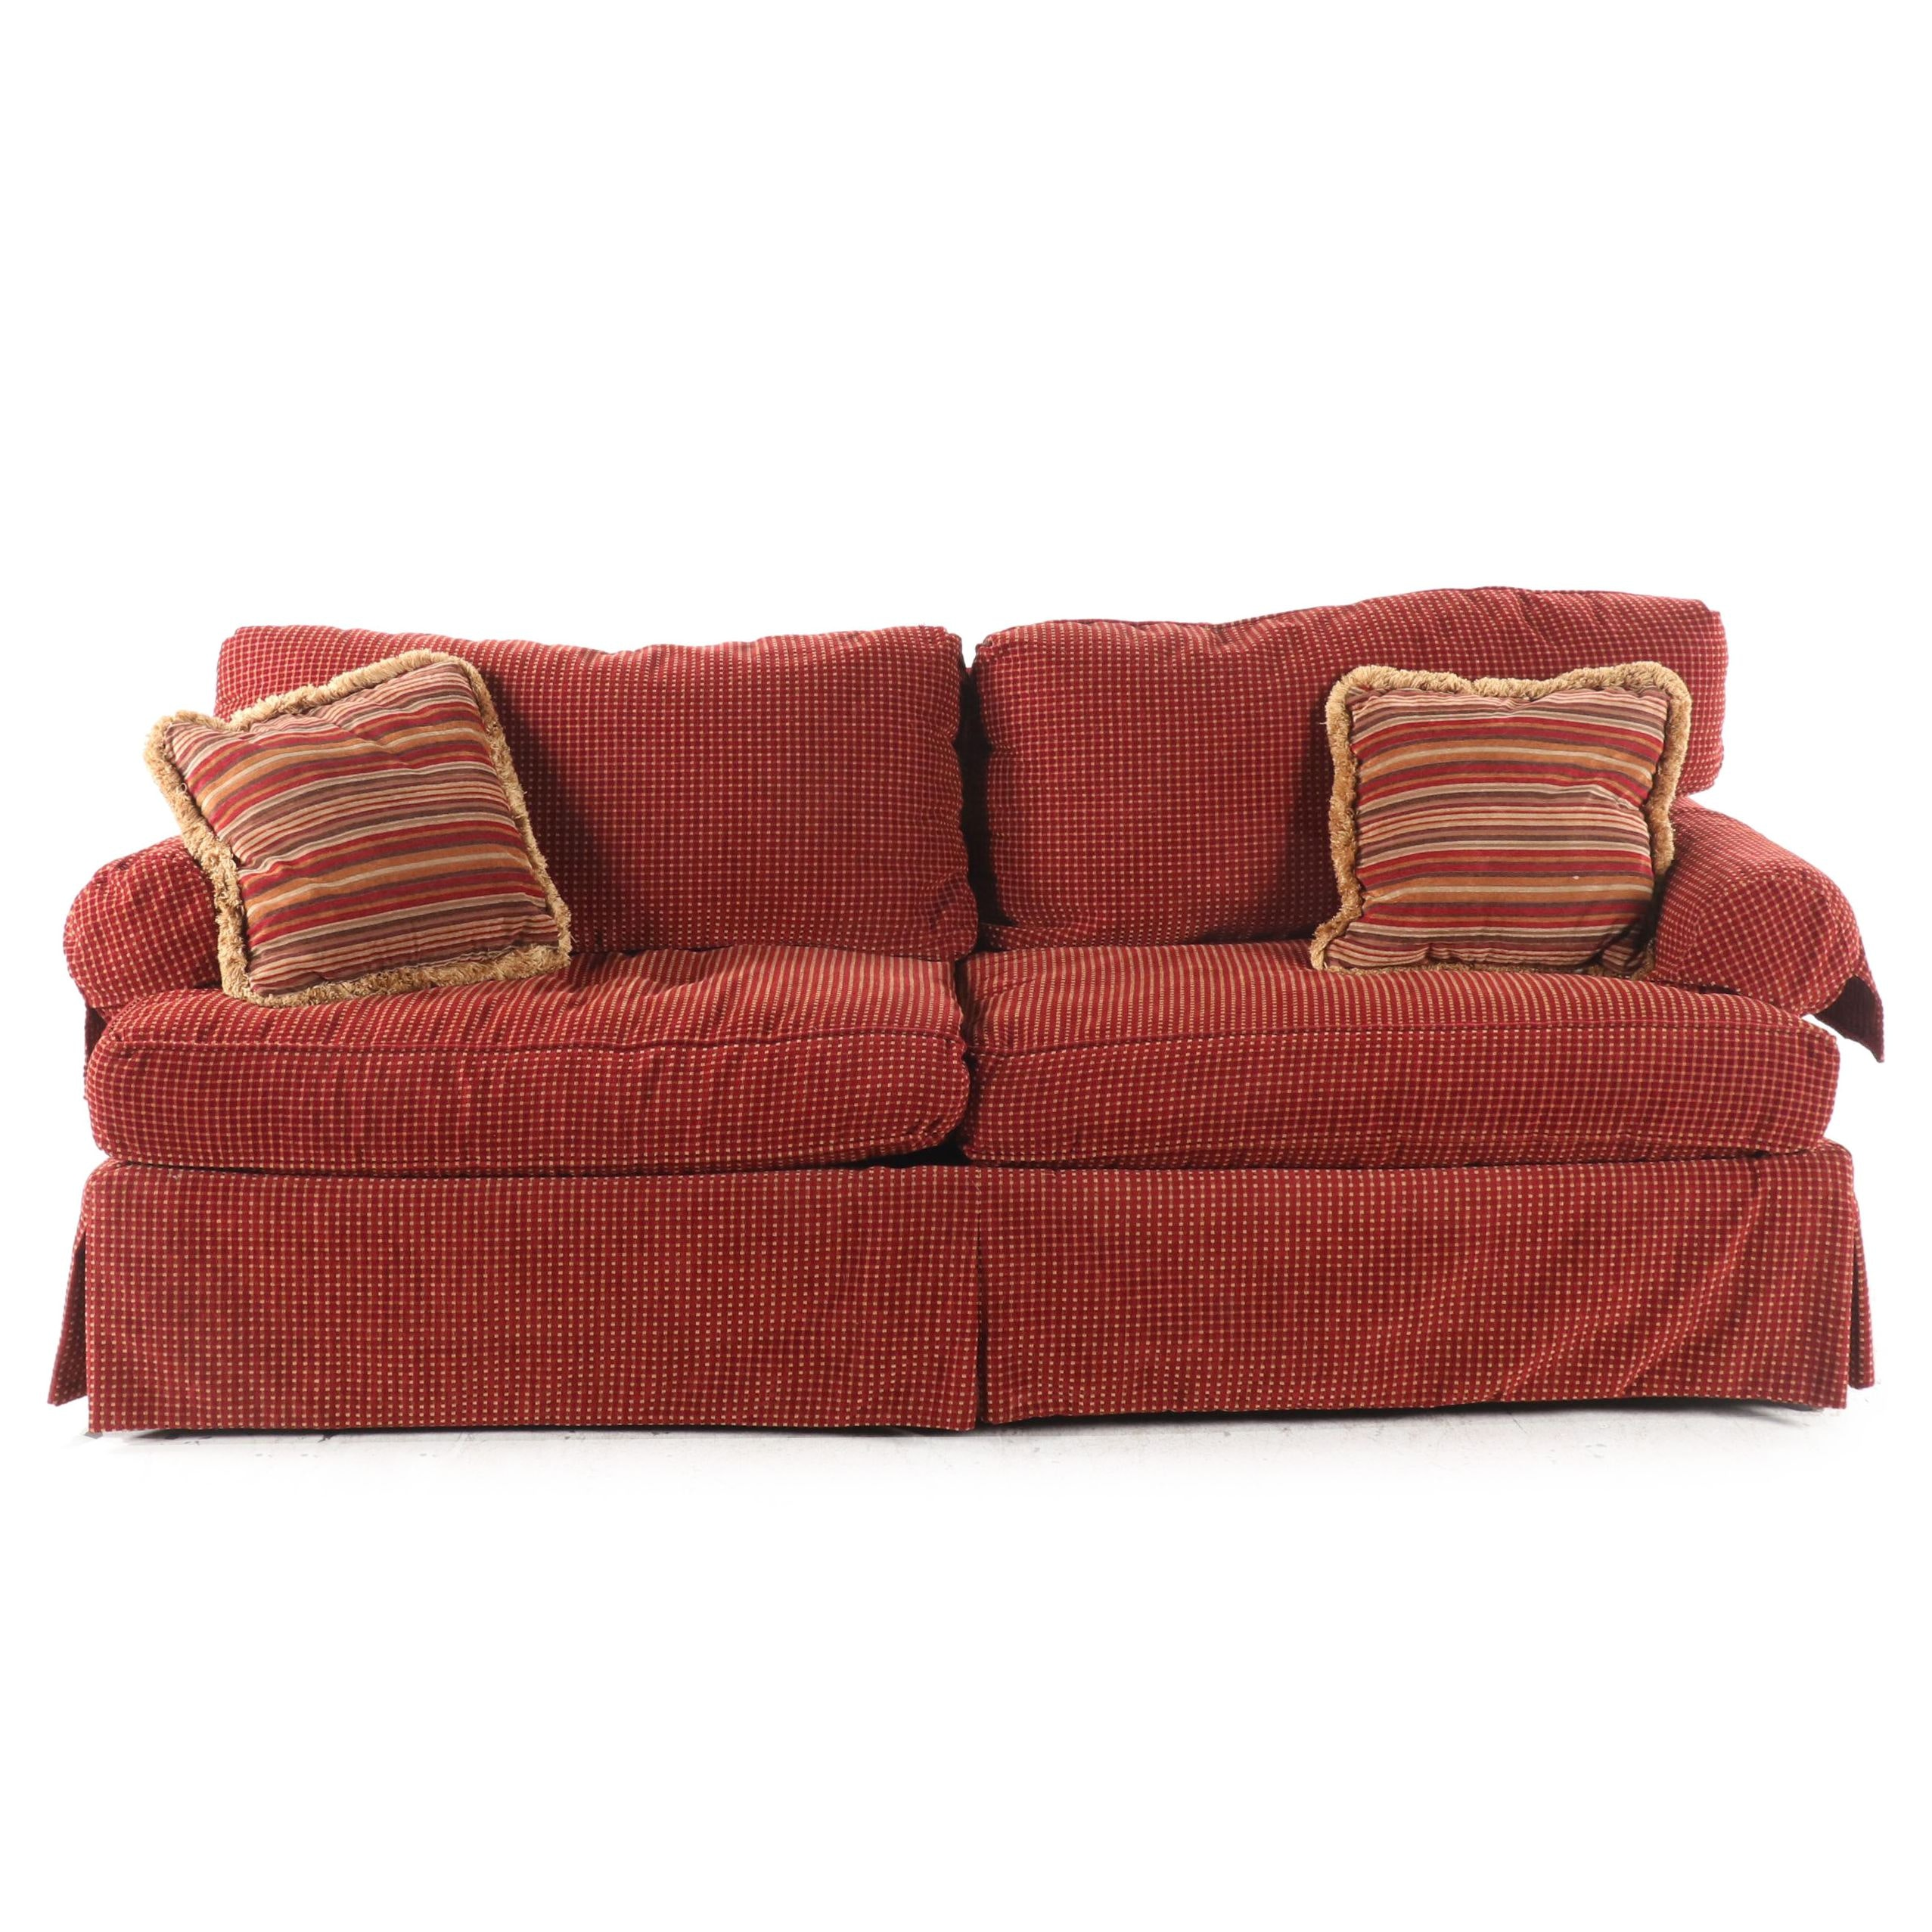 Southwood Upholstered Sofa, Contemporary